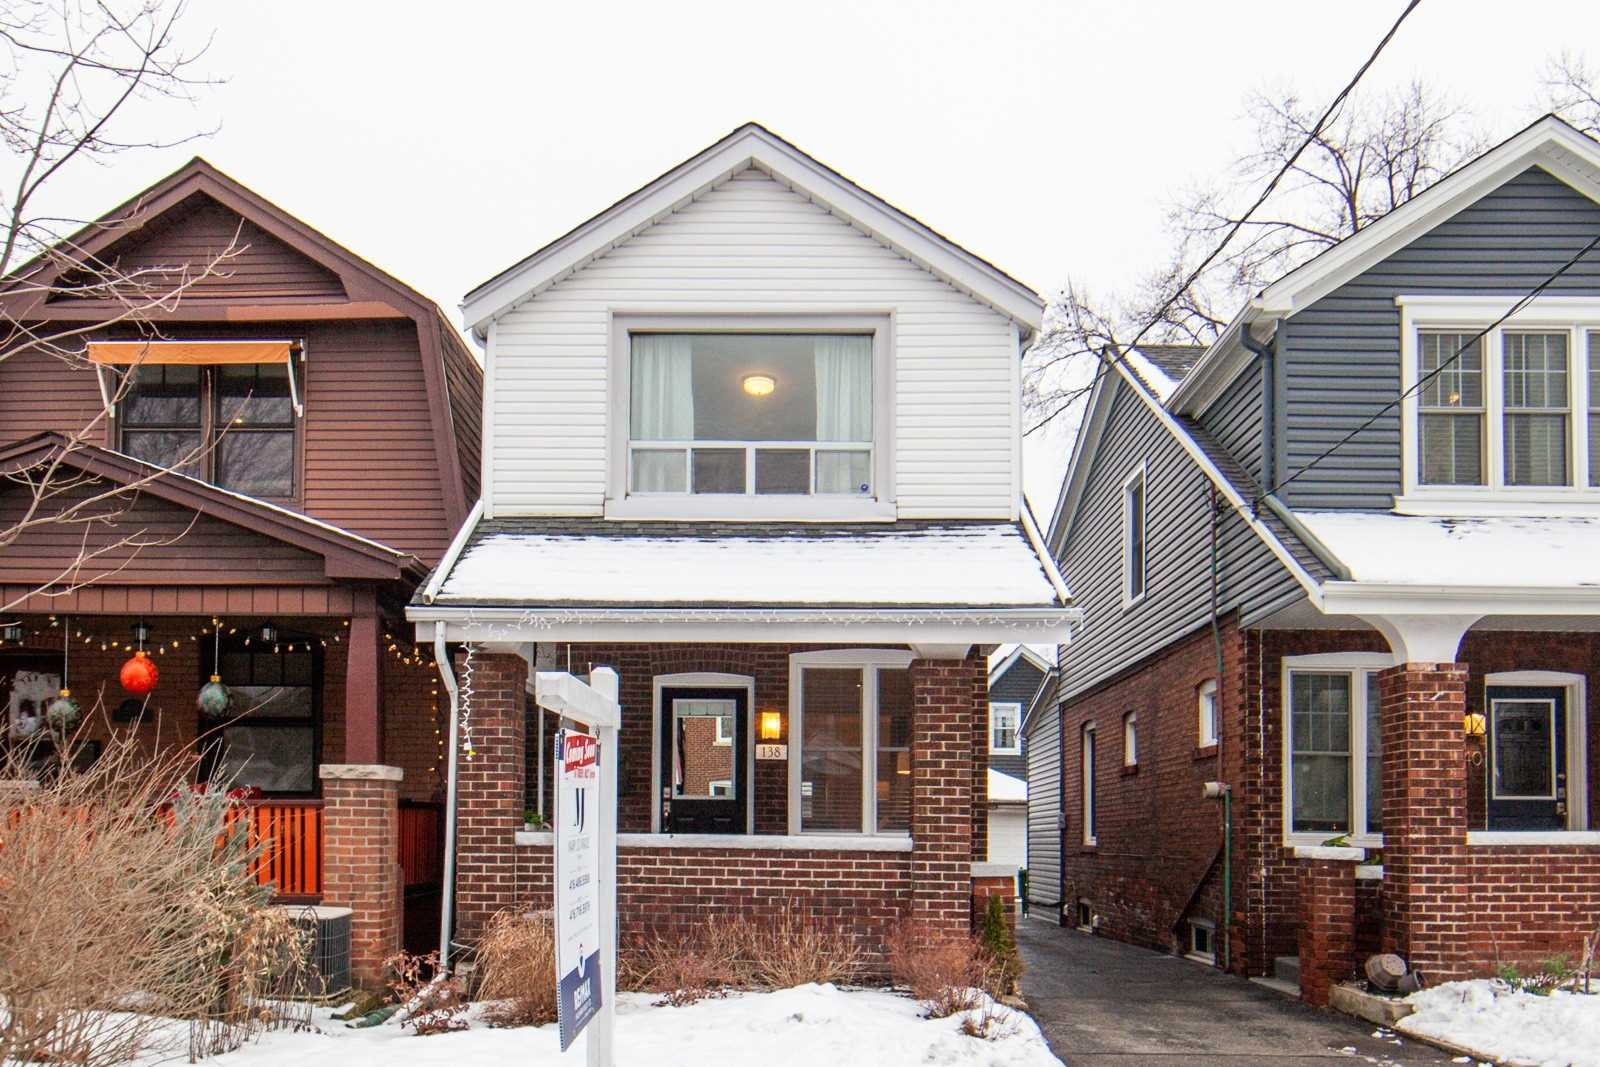 138 Woodmount Ave, Toronto, Ontario M4C3Y8, 3 Bedrooms Bedrooms, 7 Rooms Rooms,3 BathroomsBathrooms,Detached,For Sale,Woodmount,E5093037